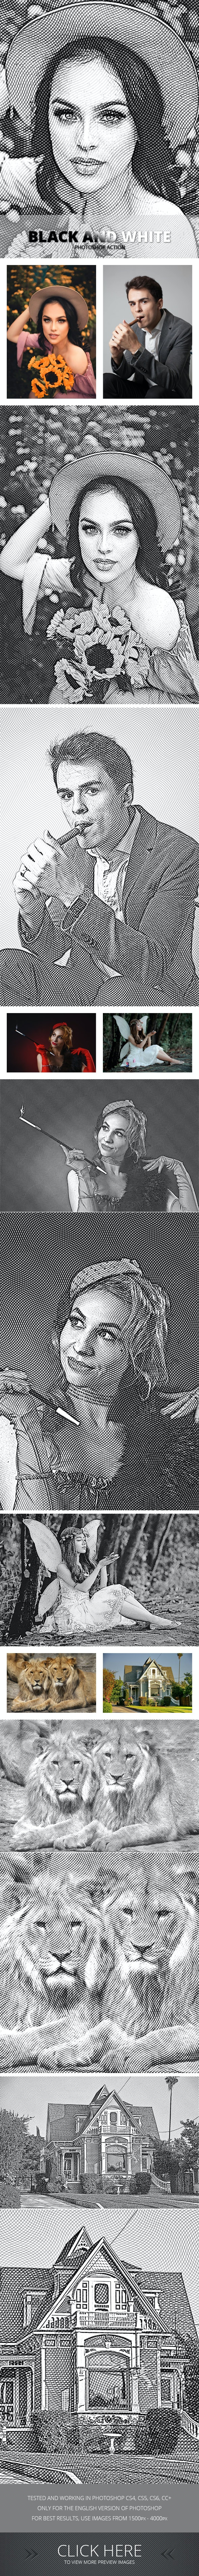 Black and White Photoshop Action - Photo Effects Actions